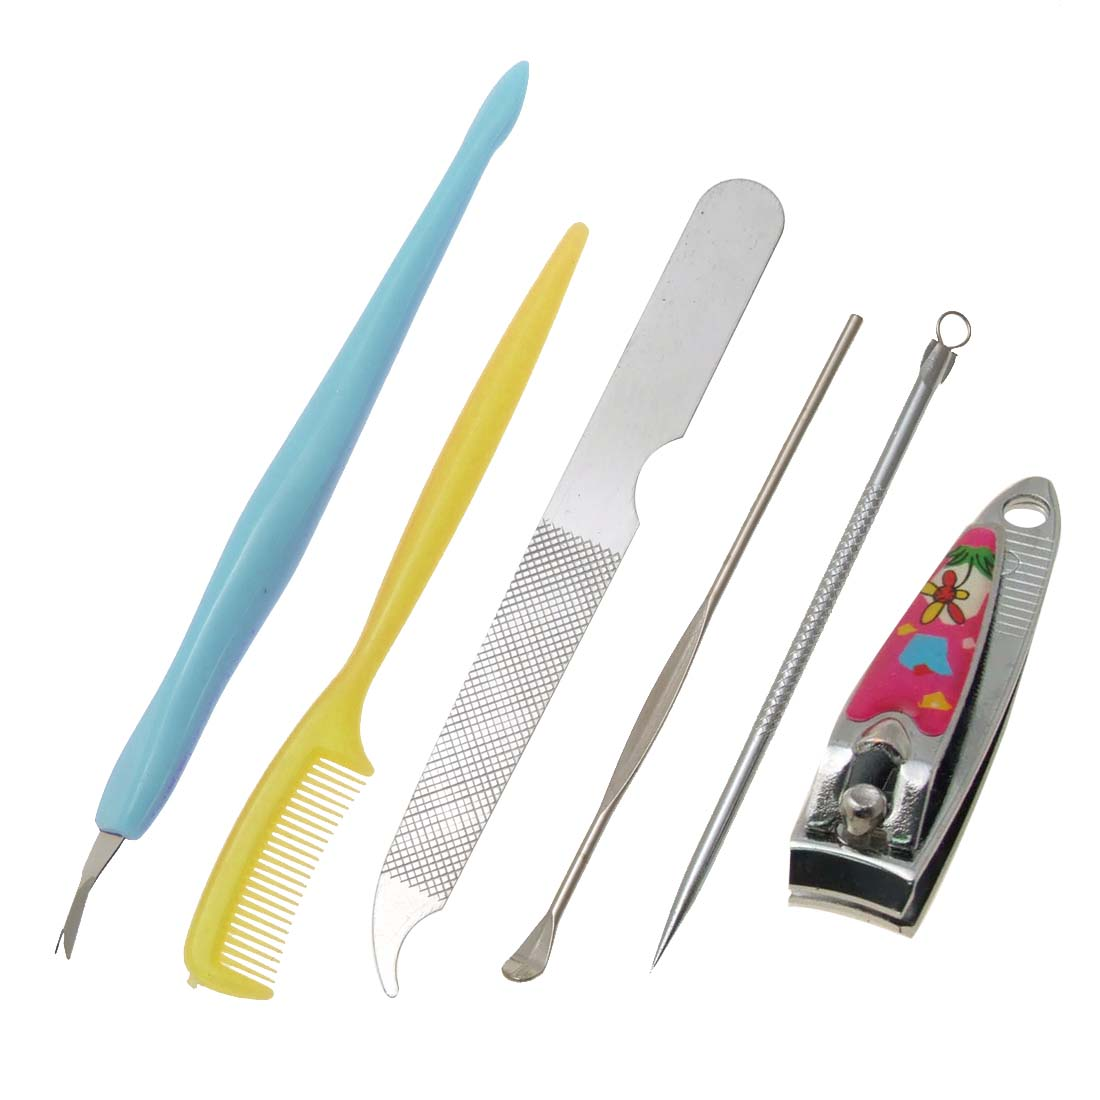 Manicure Clipper Cuticle Trimmer Comedones Extractor Nail File Eyebrow Comb Ear Wax Remover